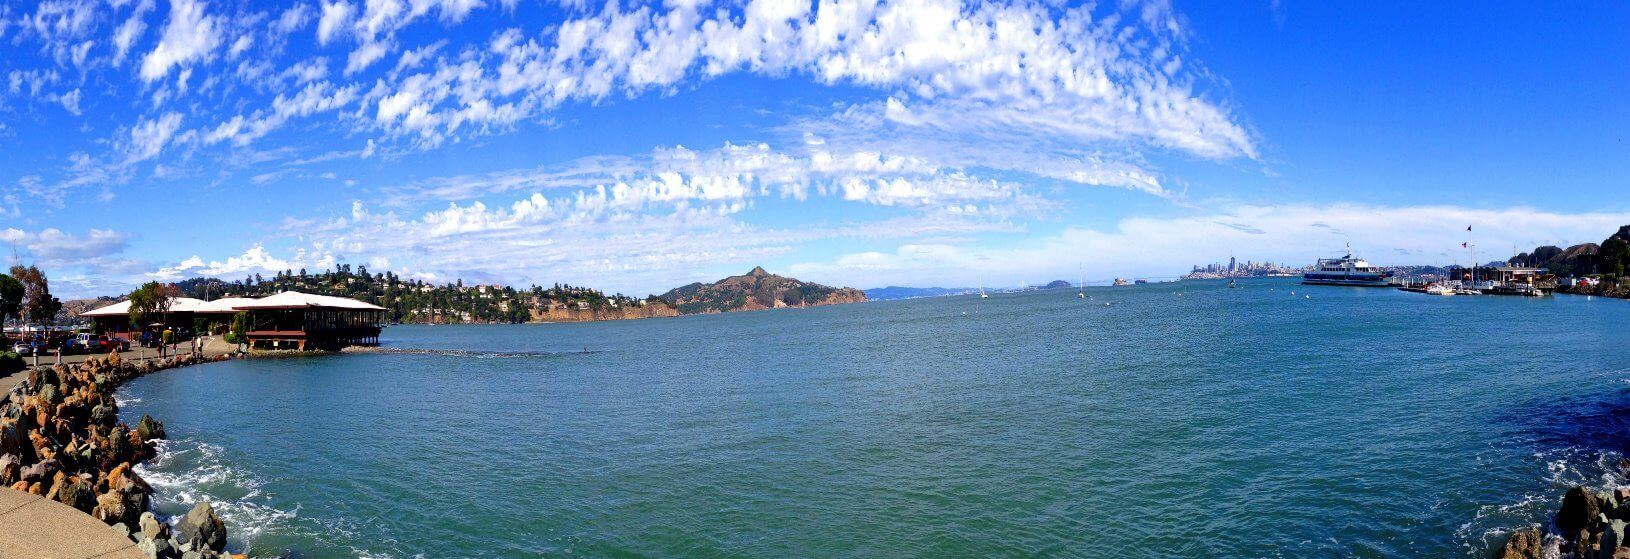 things_to_do_in_sausalito_ferry_cruise_boat_tours_from_san_francisco